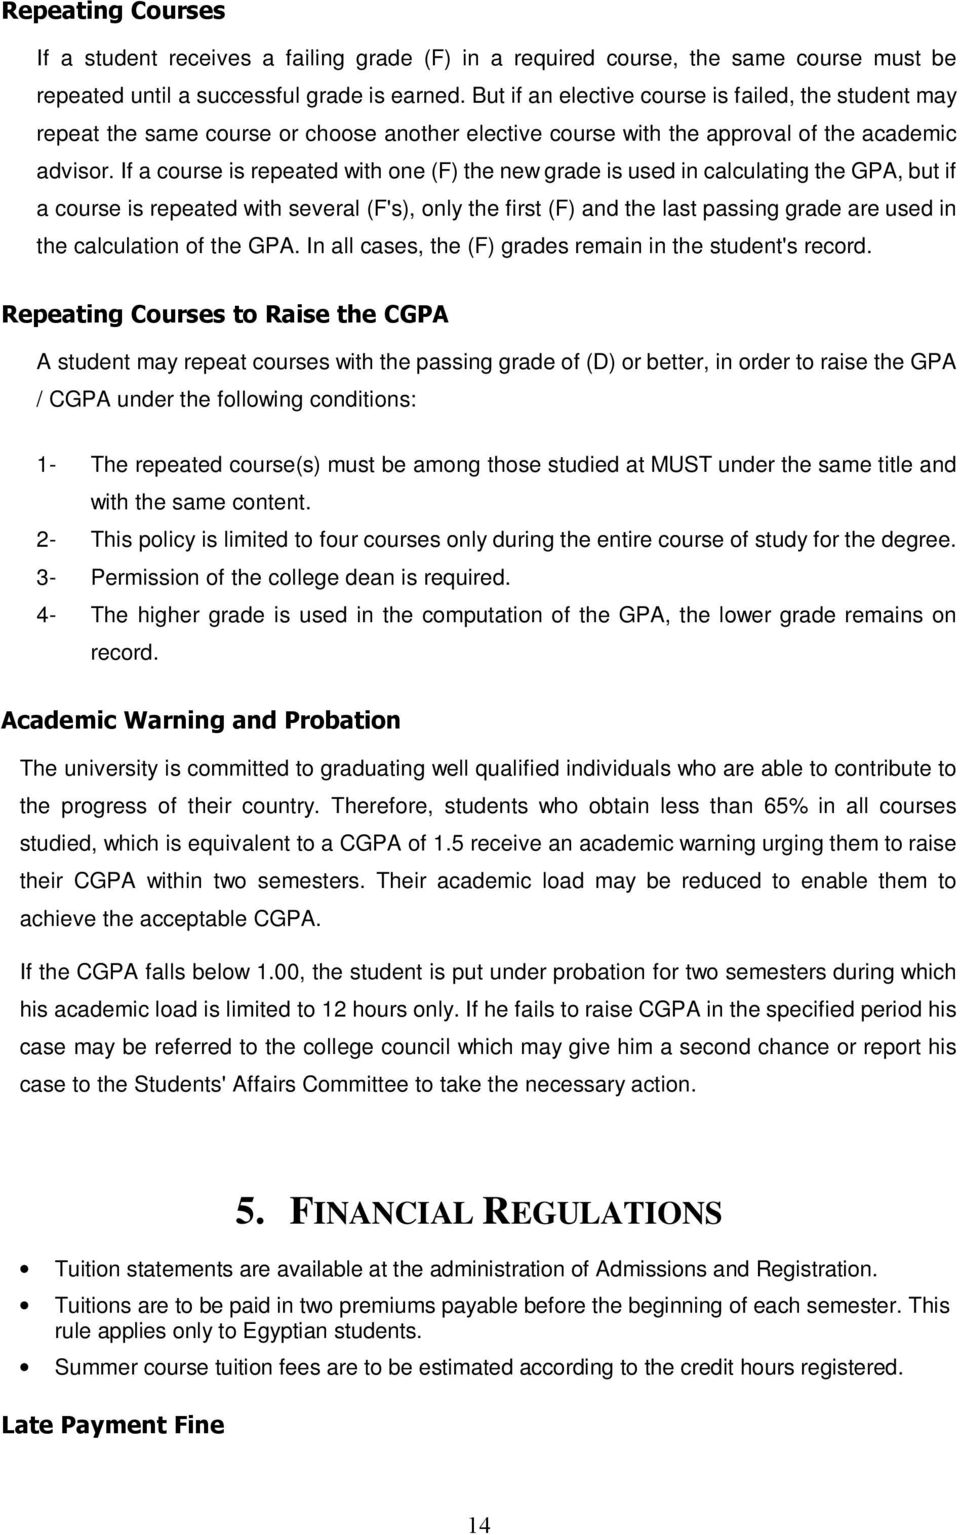 If a course is repeated with one (F) the new grade is used in calculating the GPA, but if a course is repeated with several (F's), only the first (F) and the last passing grade are used in the